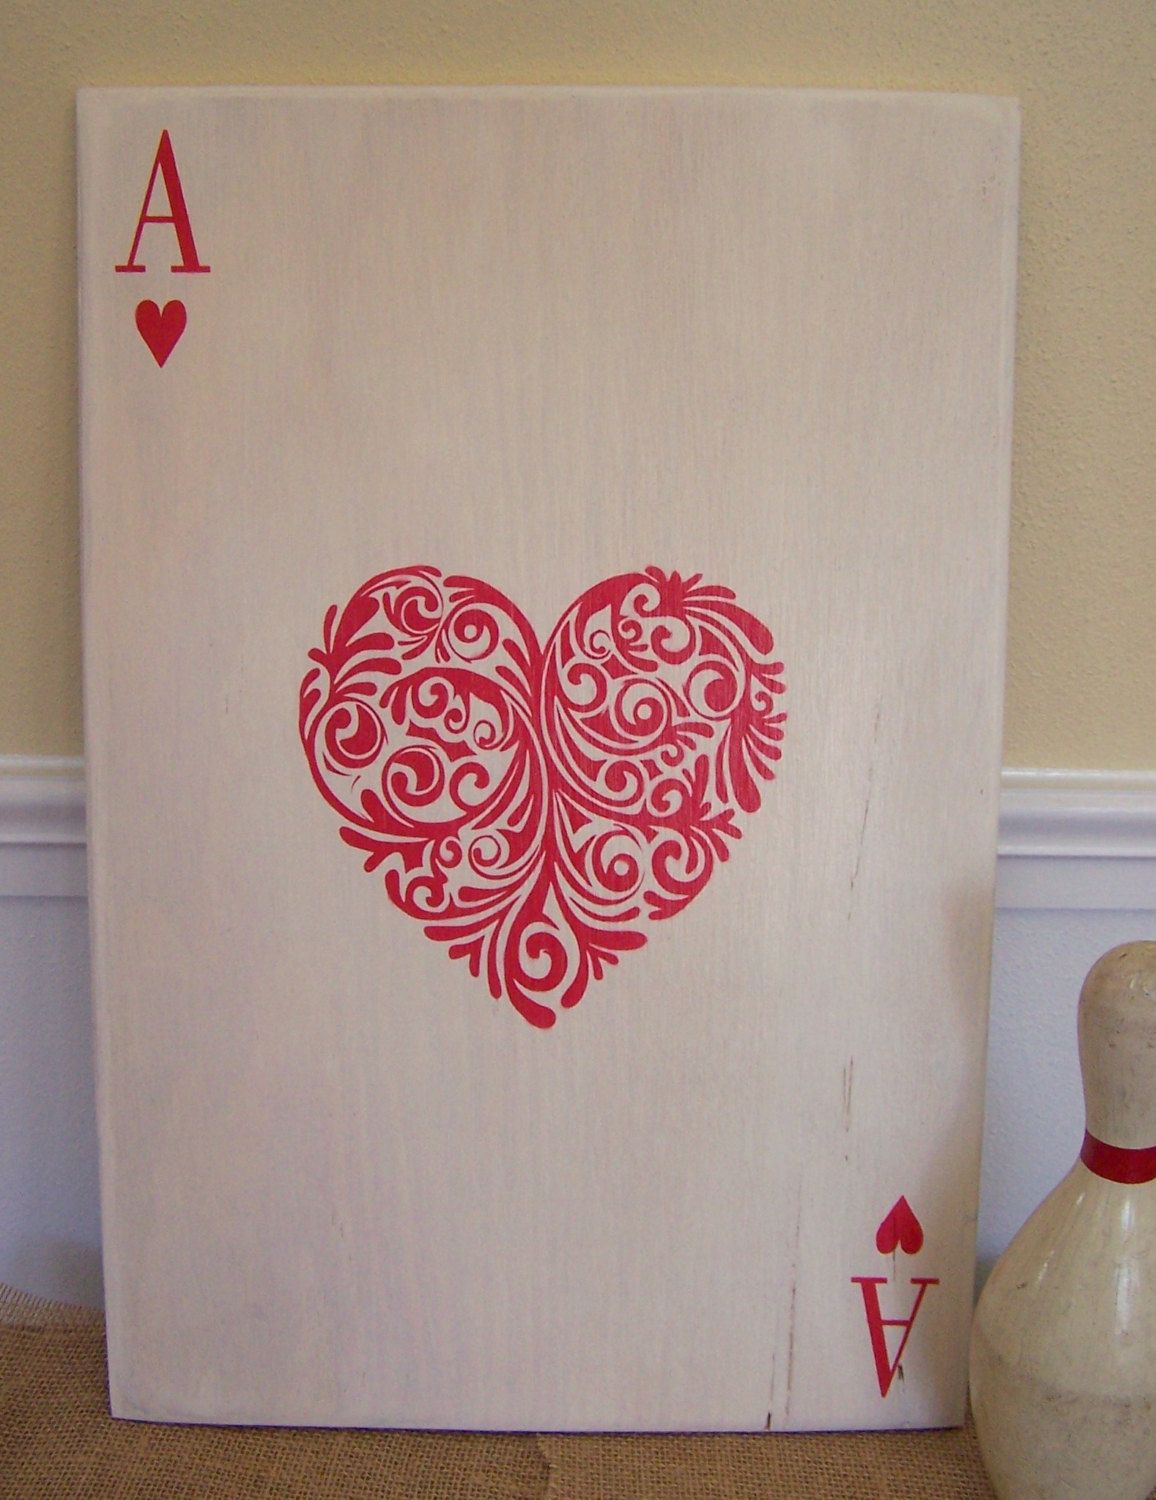 Ace Of Hearts 12 X 18 Plywood Hand Painted Sign Ideas And Designs